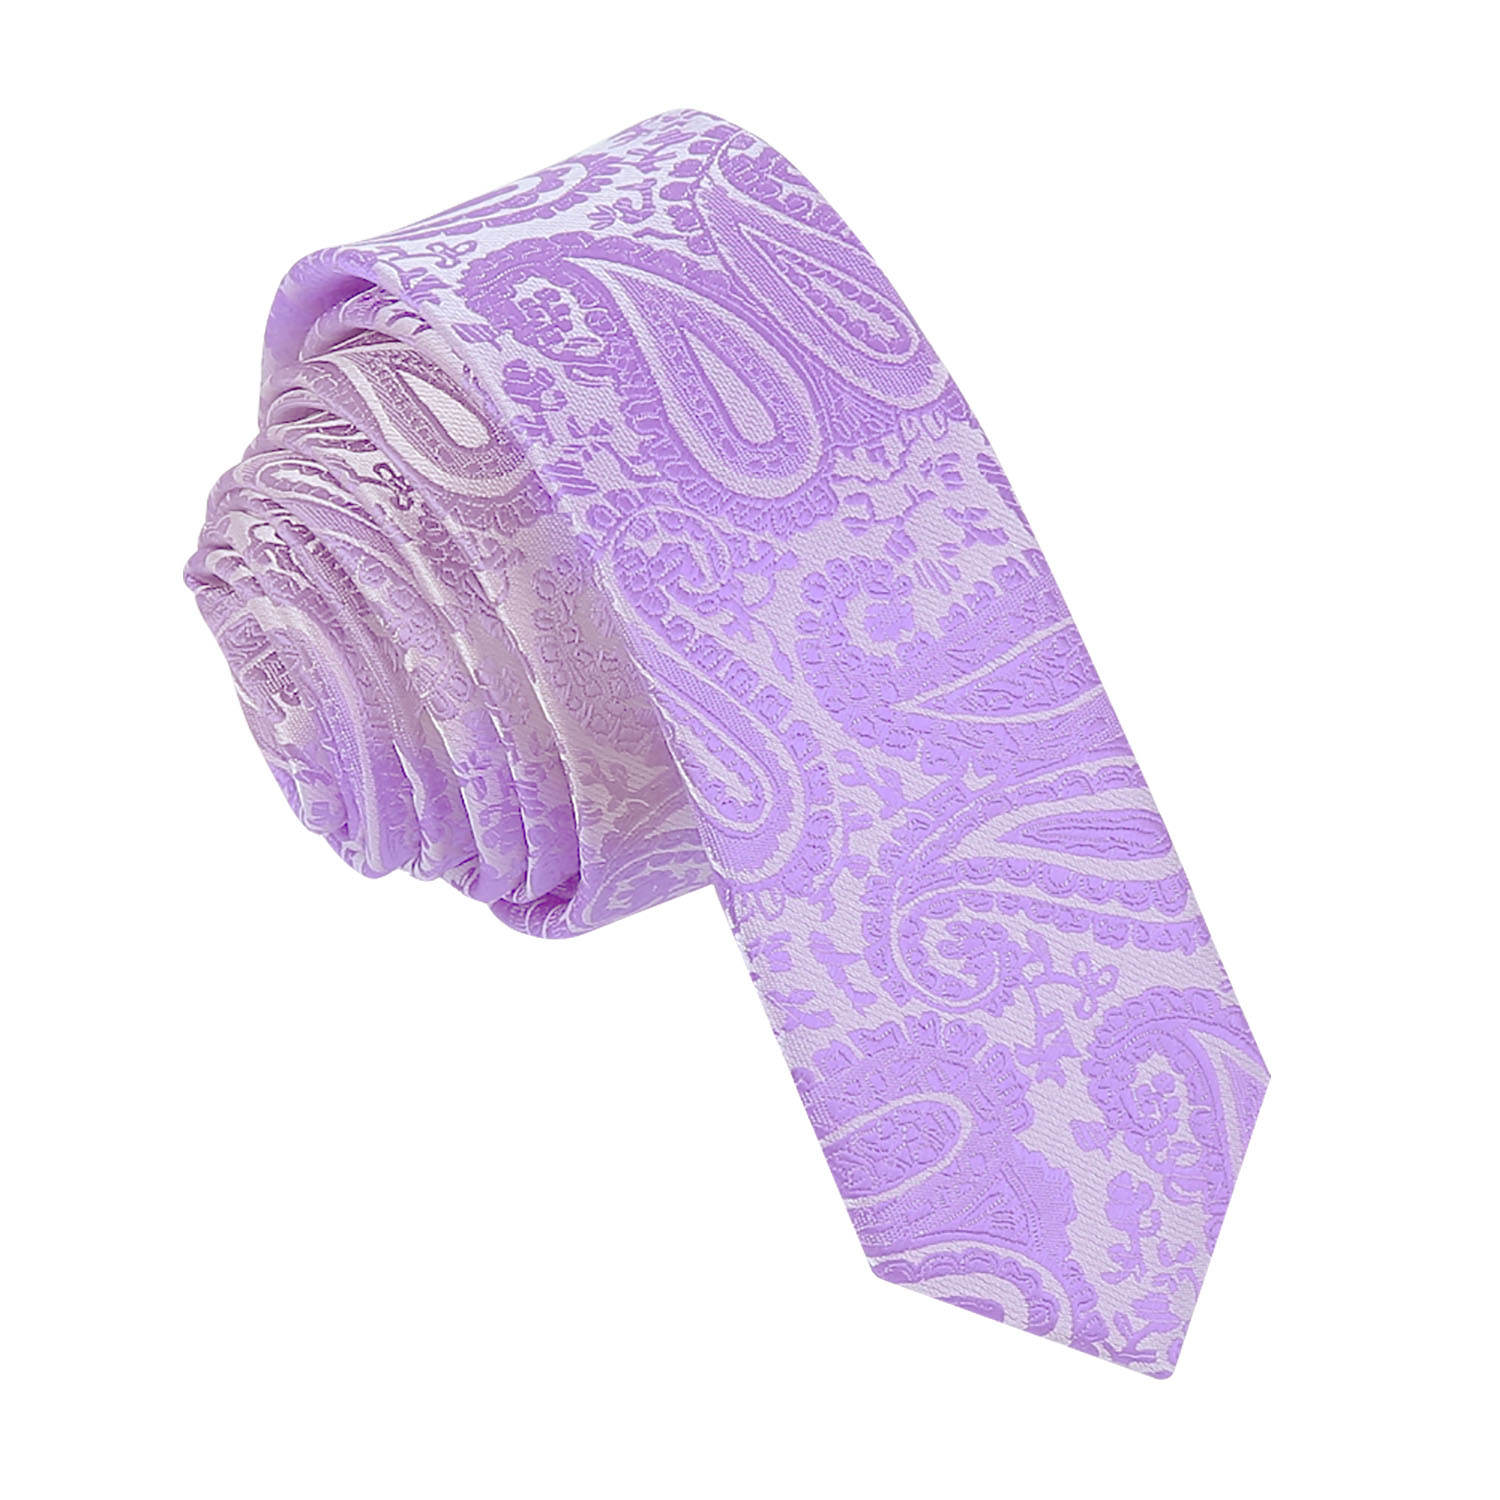 Lilac Paisley Skinny Boys Tie Childrens Tie Kids Tie Wedding Tie